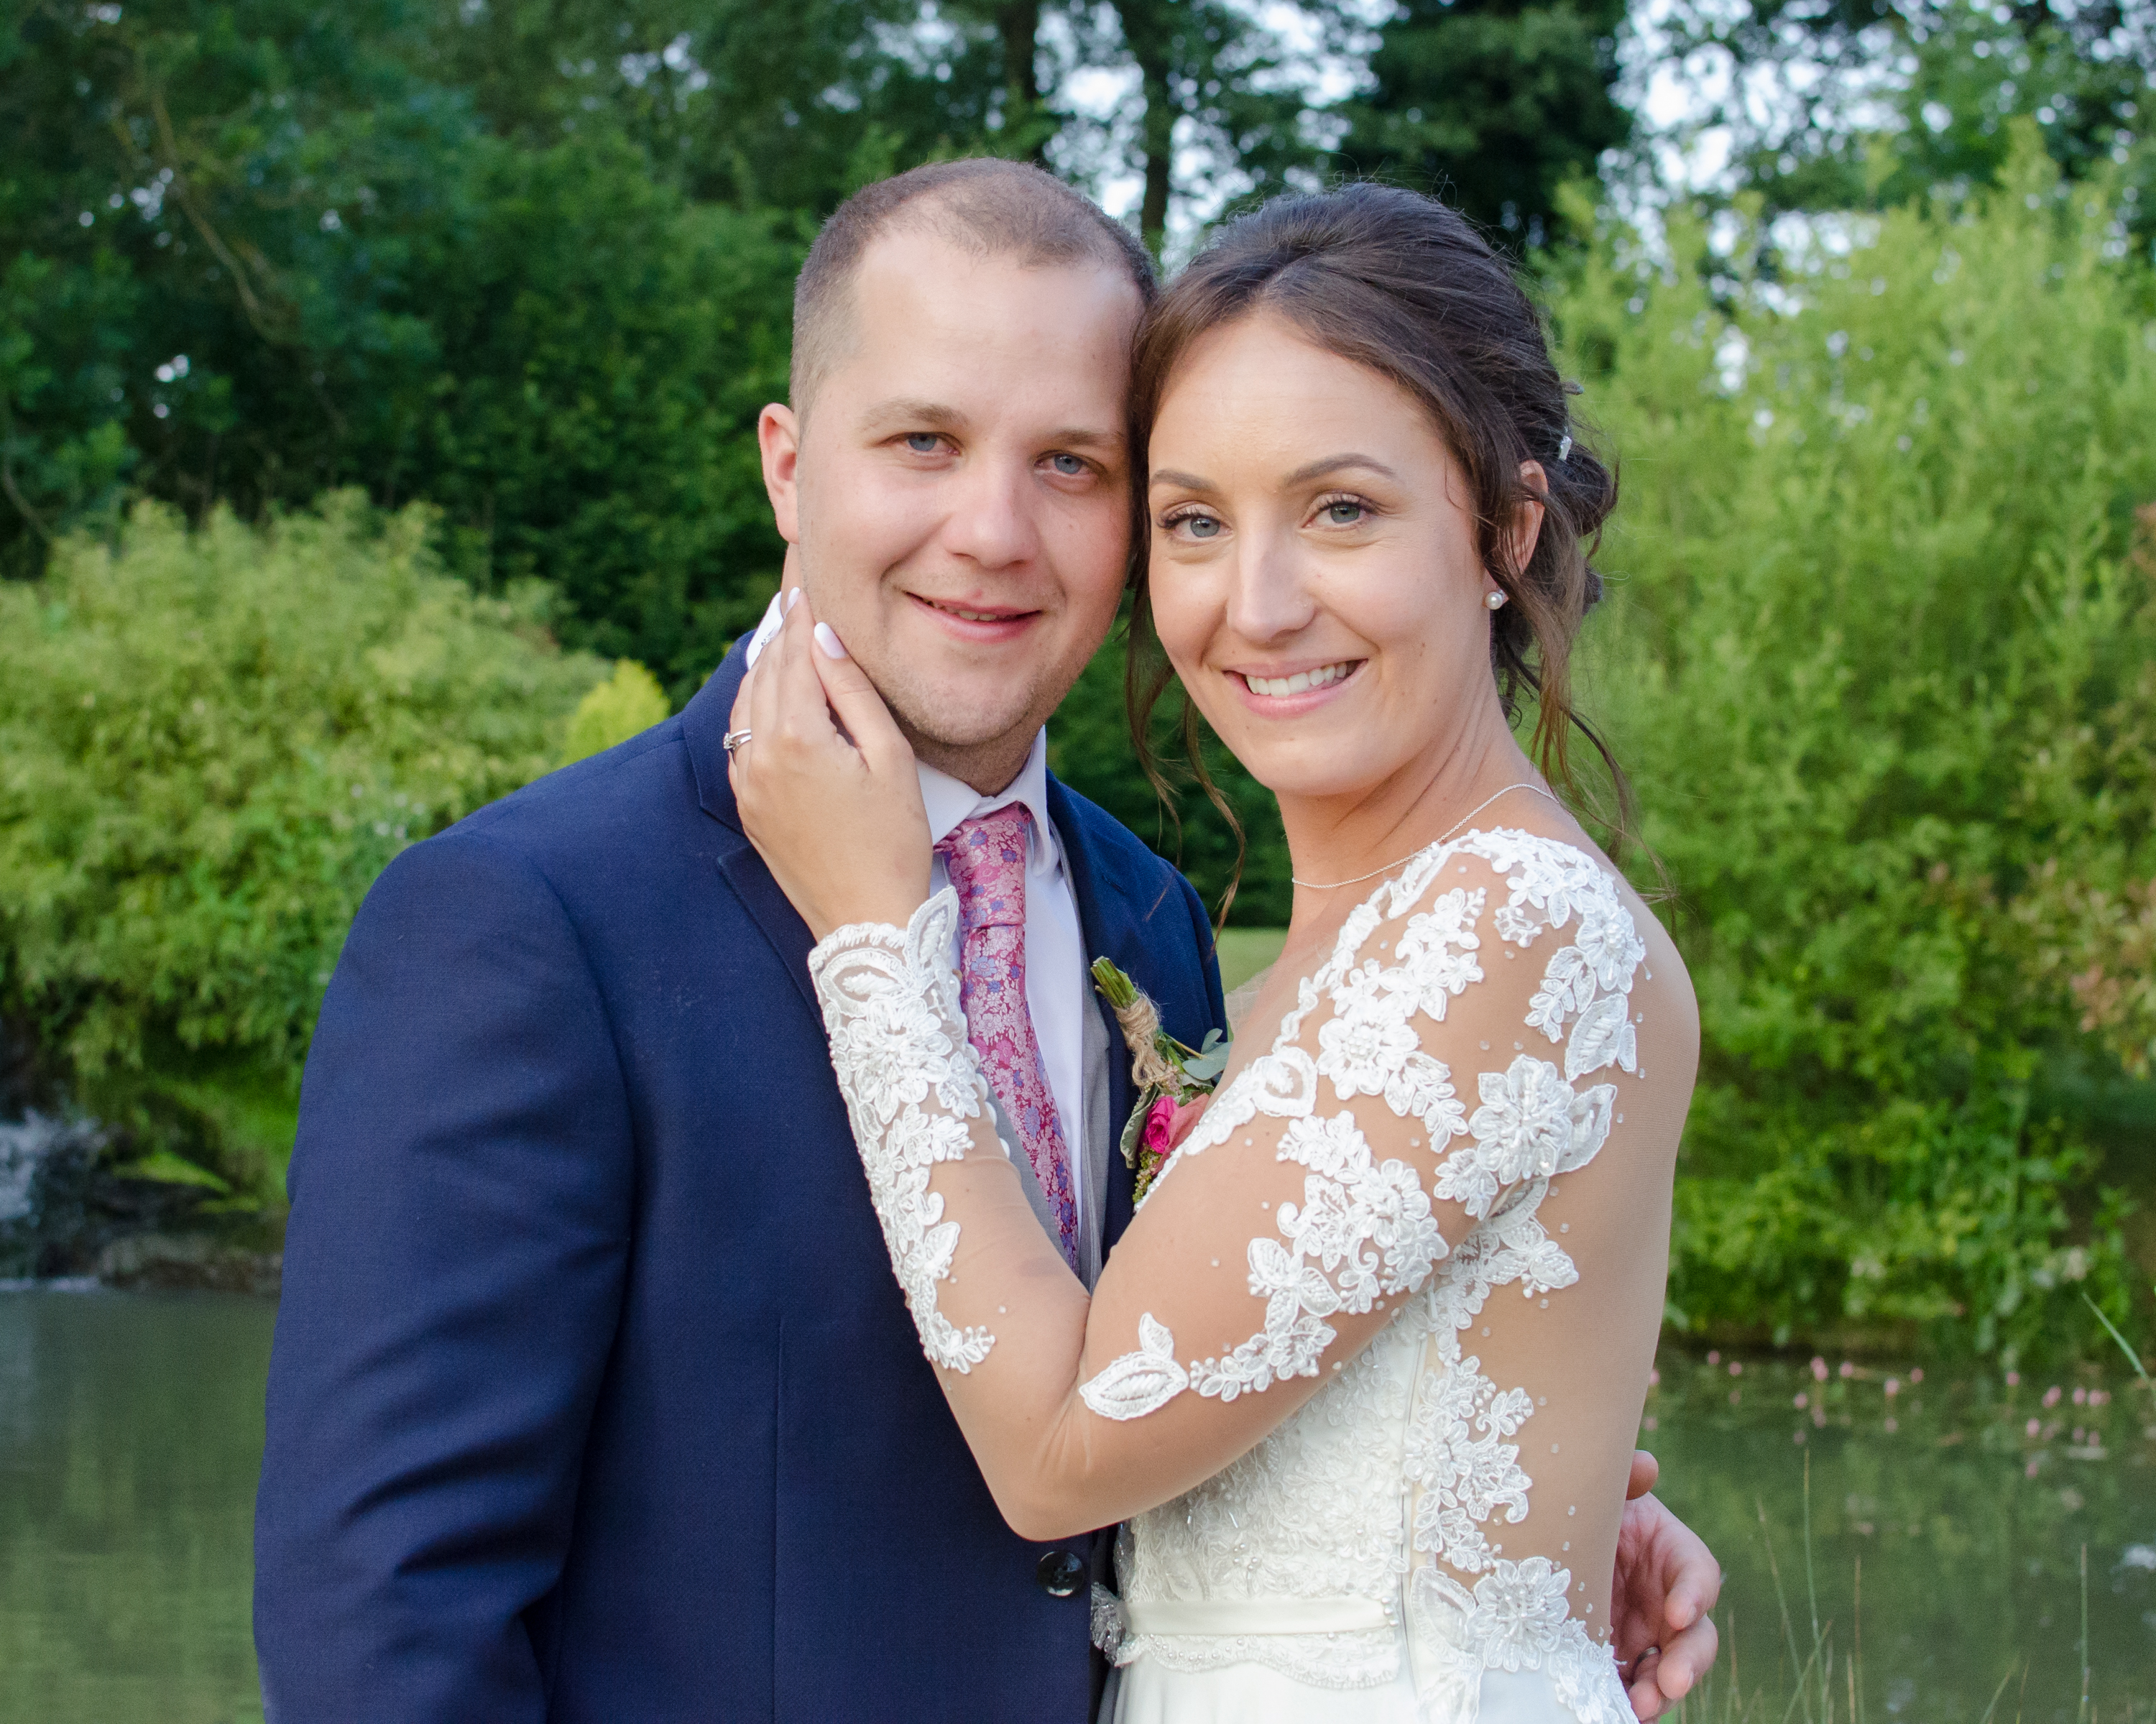 Oxted Wedding Photography at Coltsford Mill